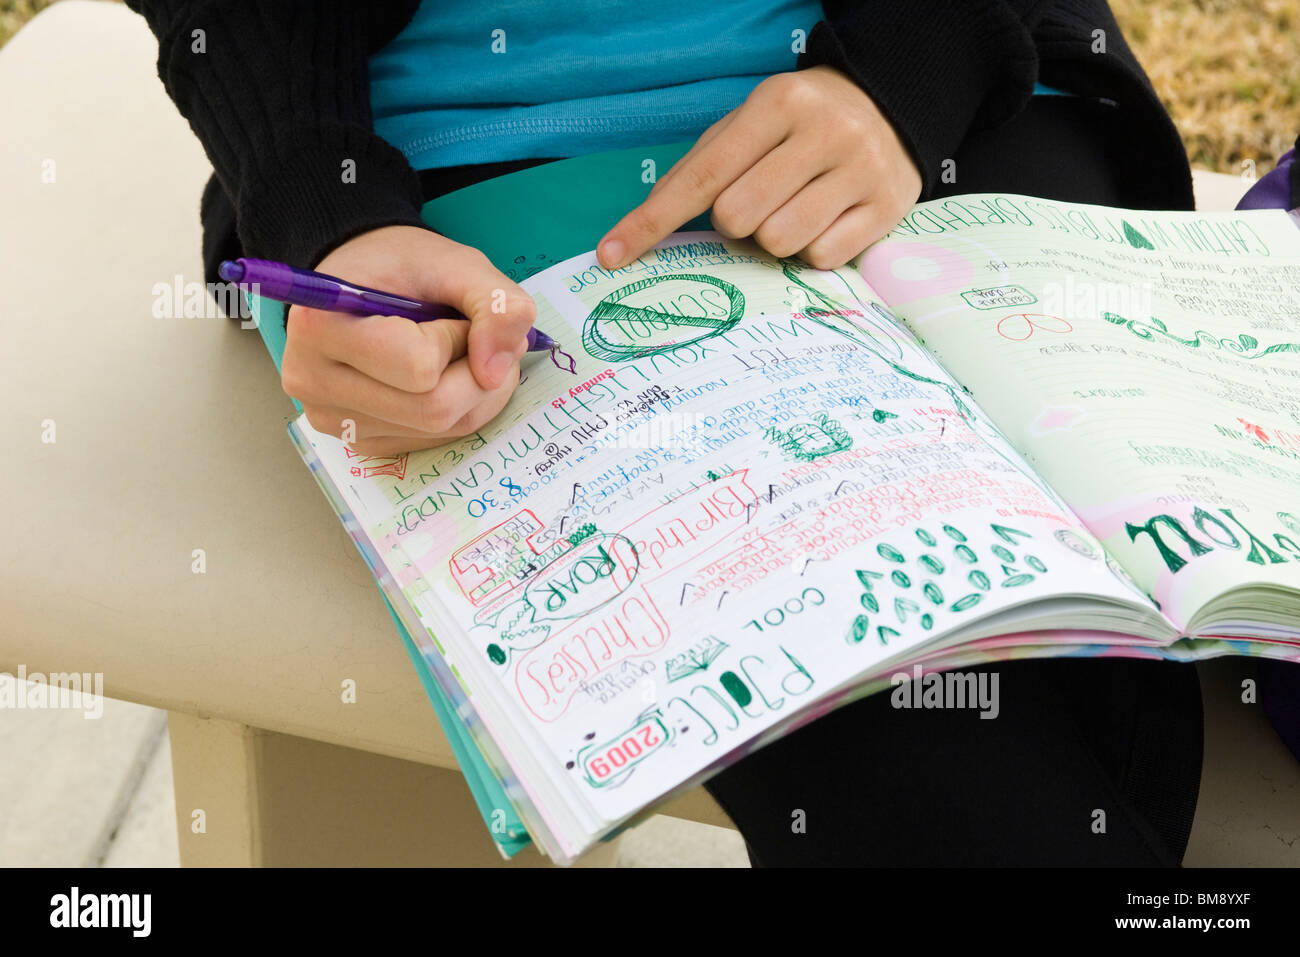 Student writing in notebook illustrated with doodles Stock Photo